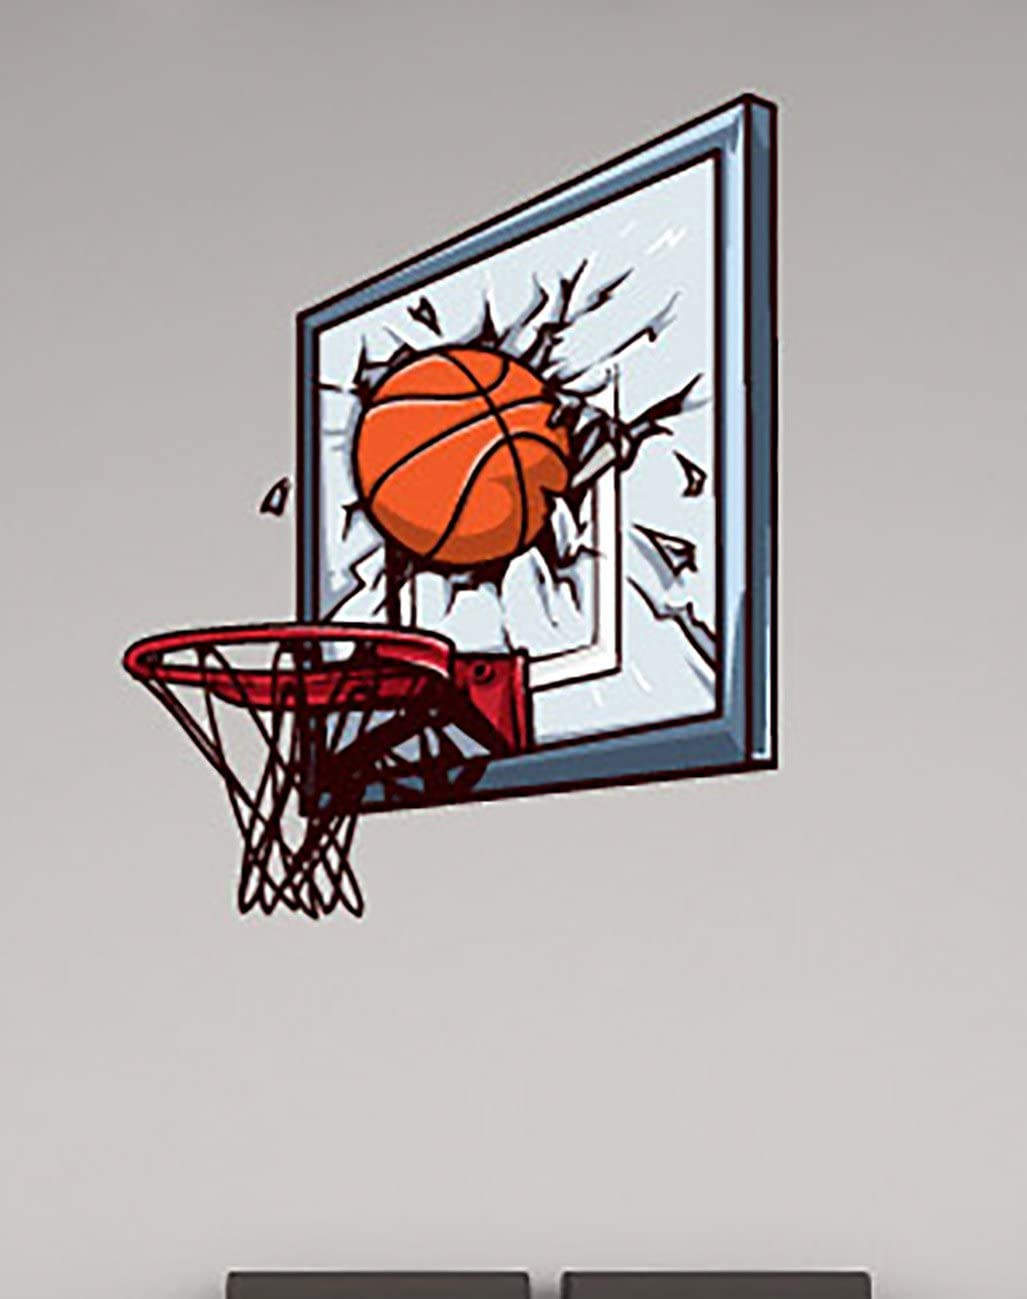 Basketball Broken Headboard Wall Decals Stickers Uscolor010, Brown w/Blue, 60 Inches